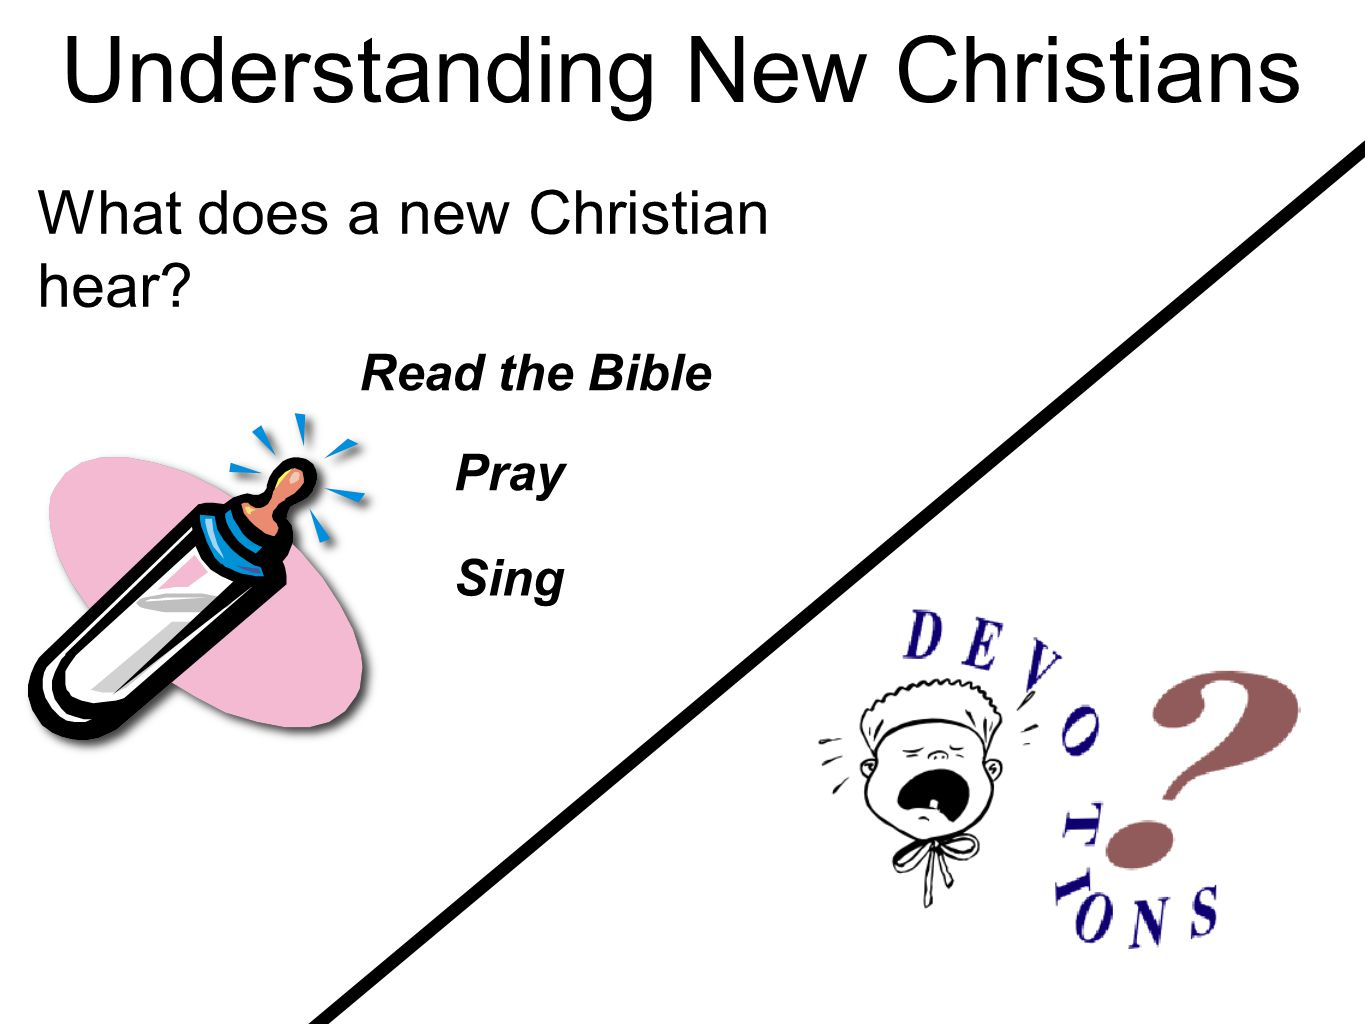 Understanding New Christians Read the Bible Pray Sing What does a new Christian hear?